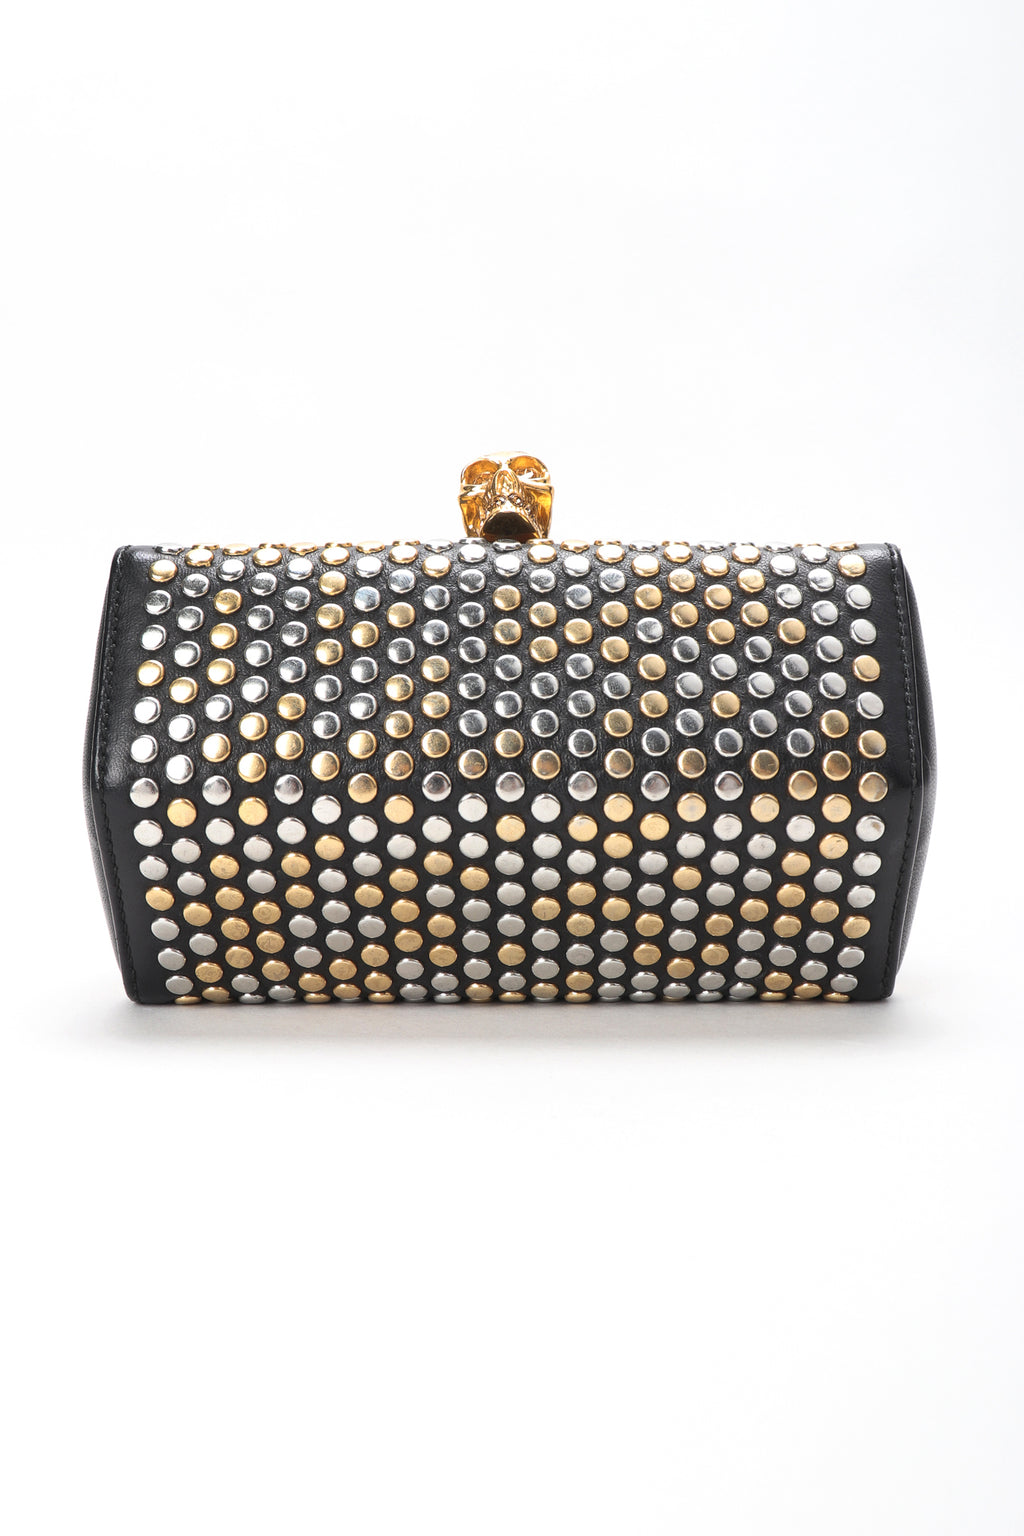 Recess Designer Consignment Vintage Alexander McQueen Studded Skull Leather Hexagon Convertible Clutch Crossbody Bag Los Angeles Resale